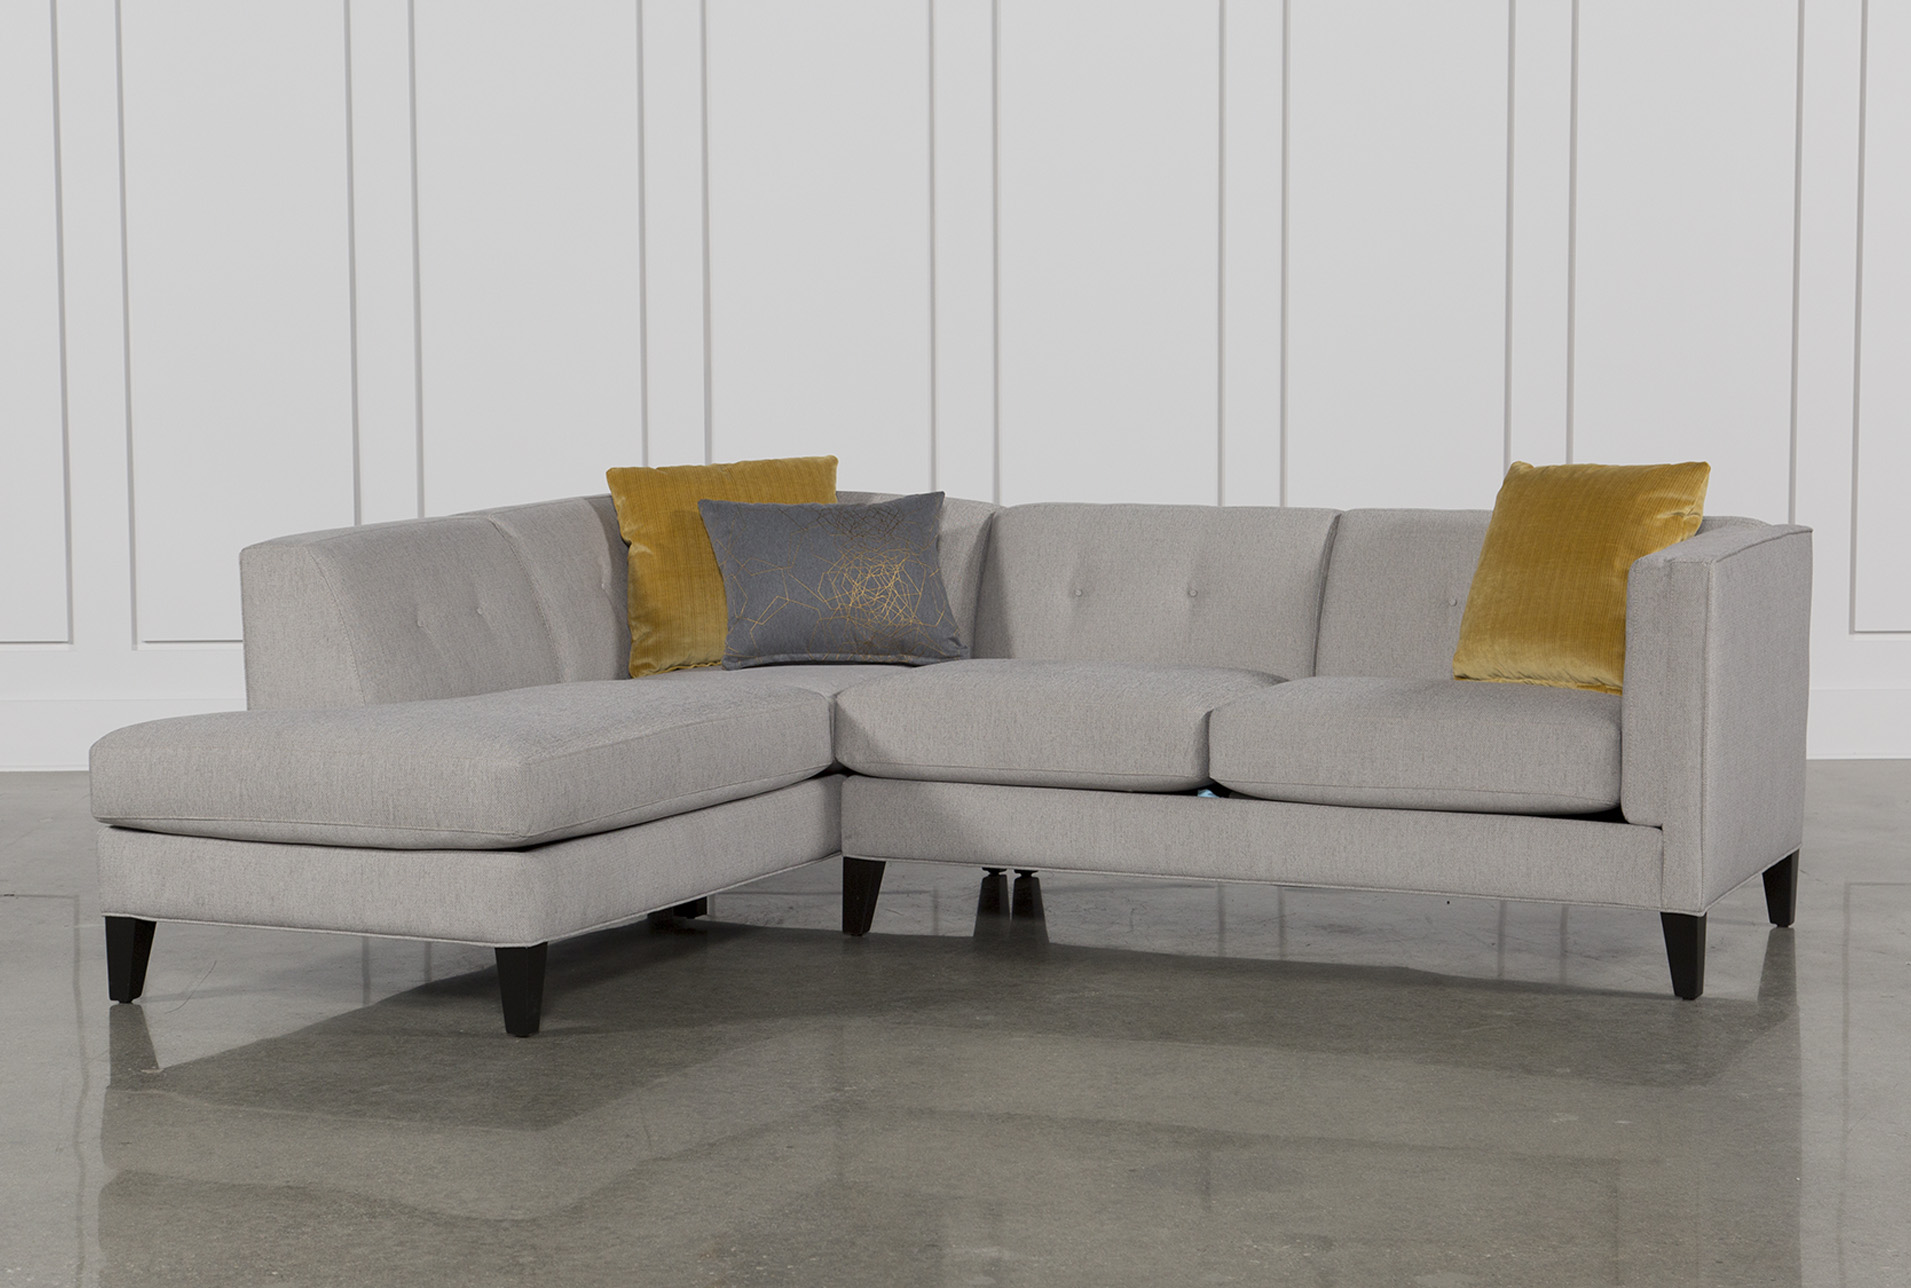 A small sectional sofa is adorable home furniture for your living room